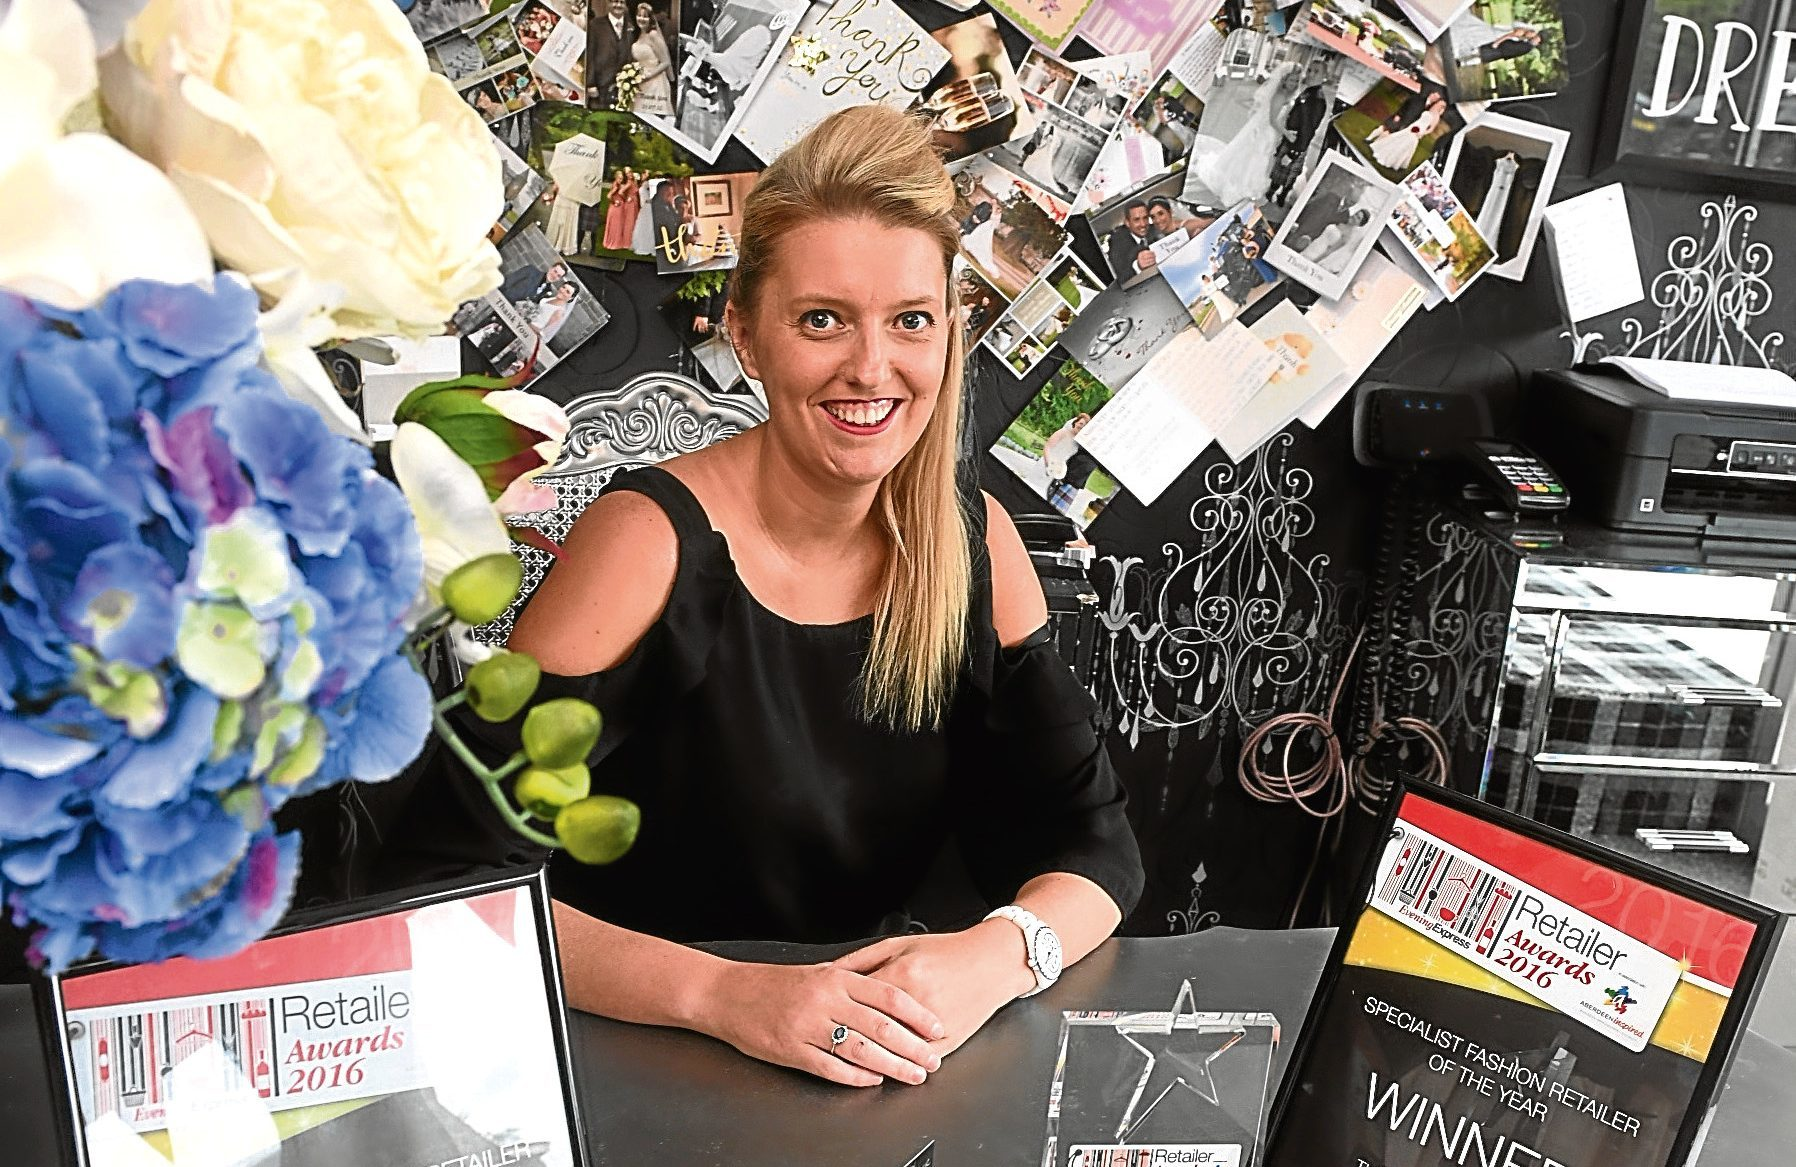 Stephanie Bain said entering the awards had given her business extra exposure.